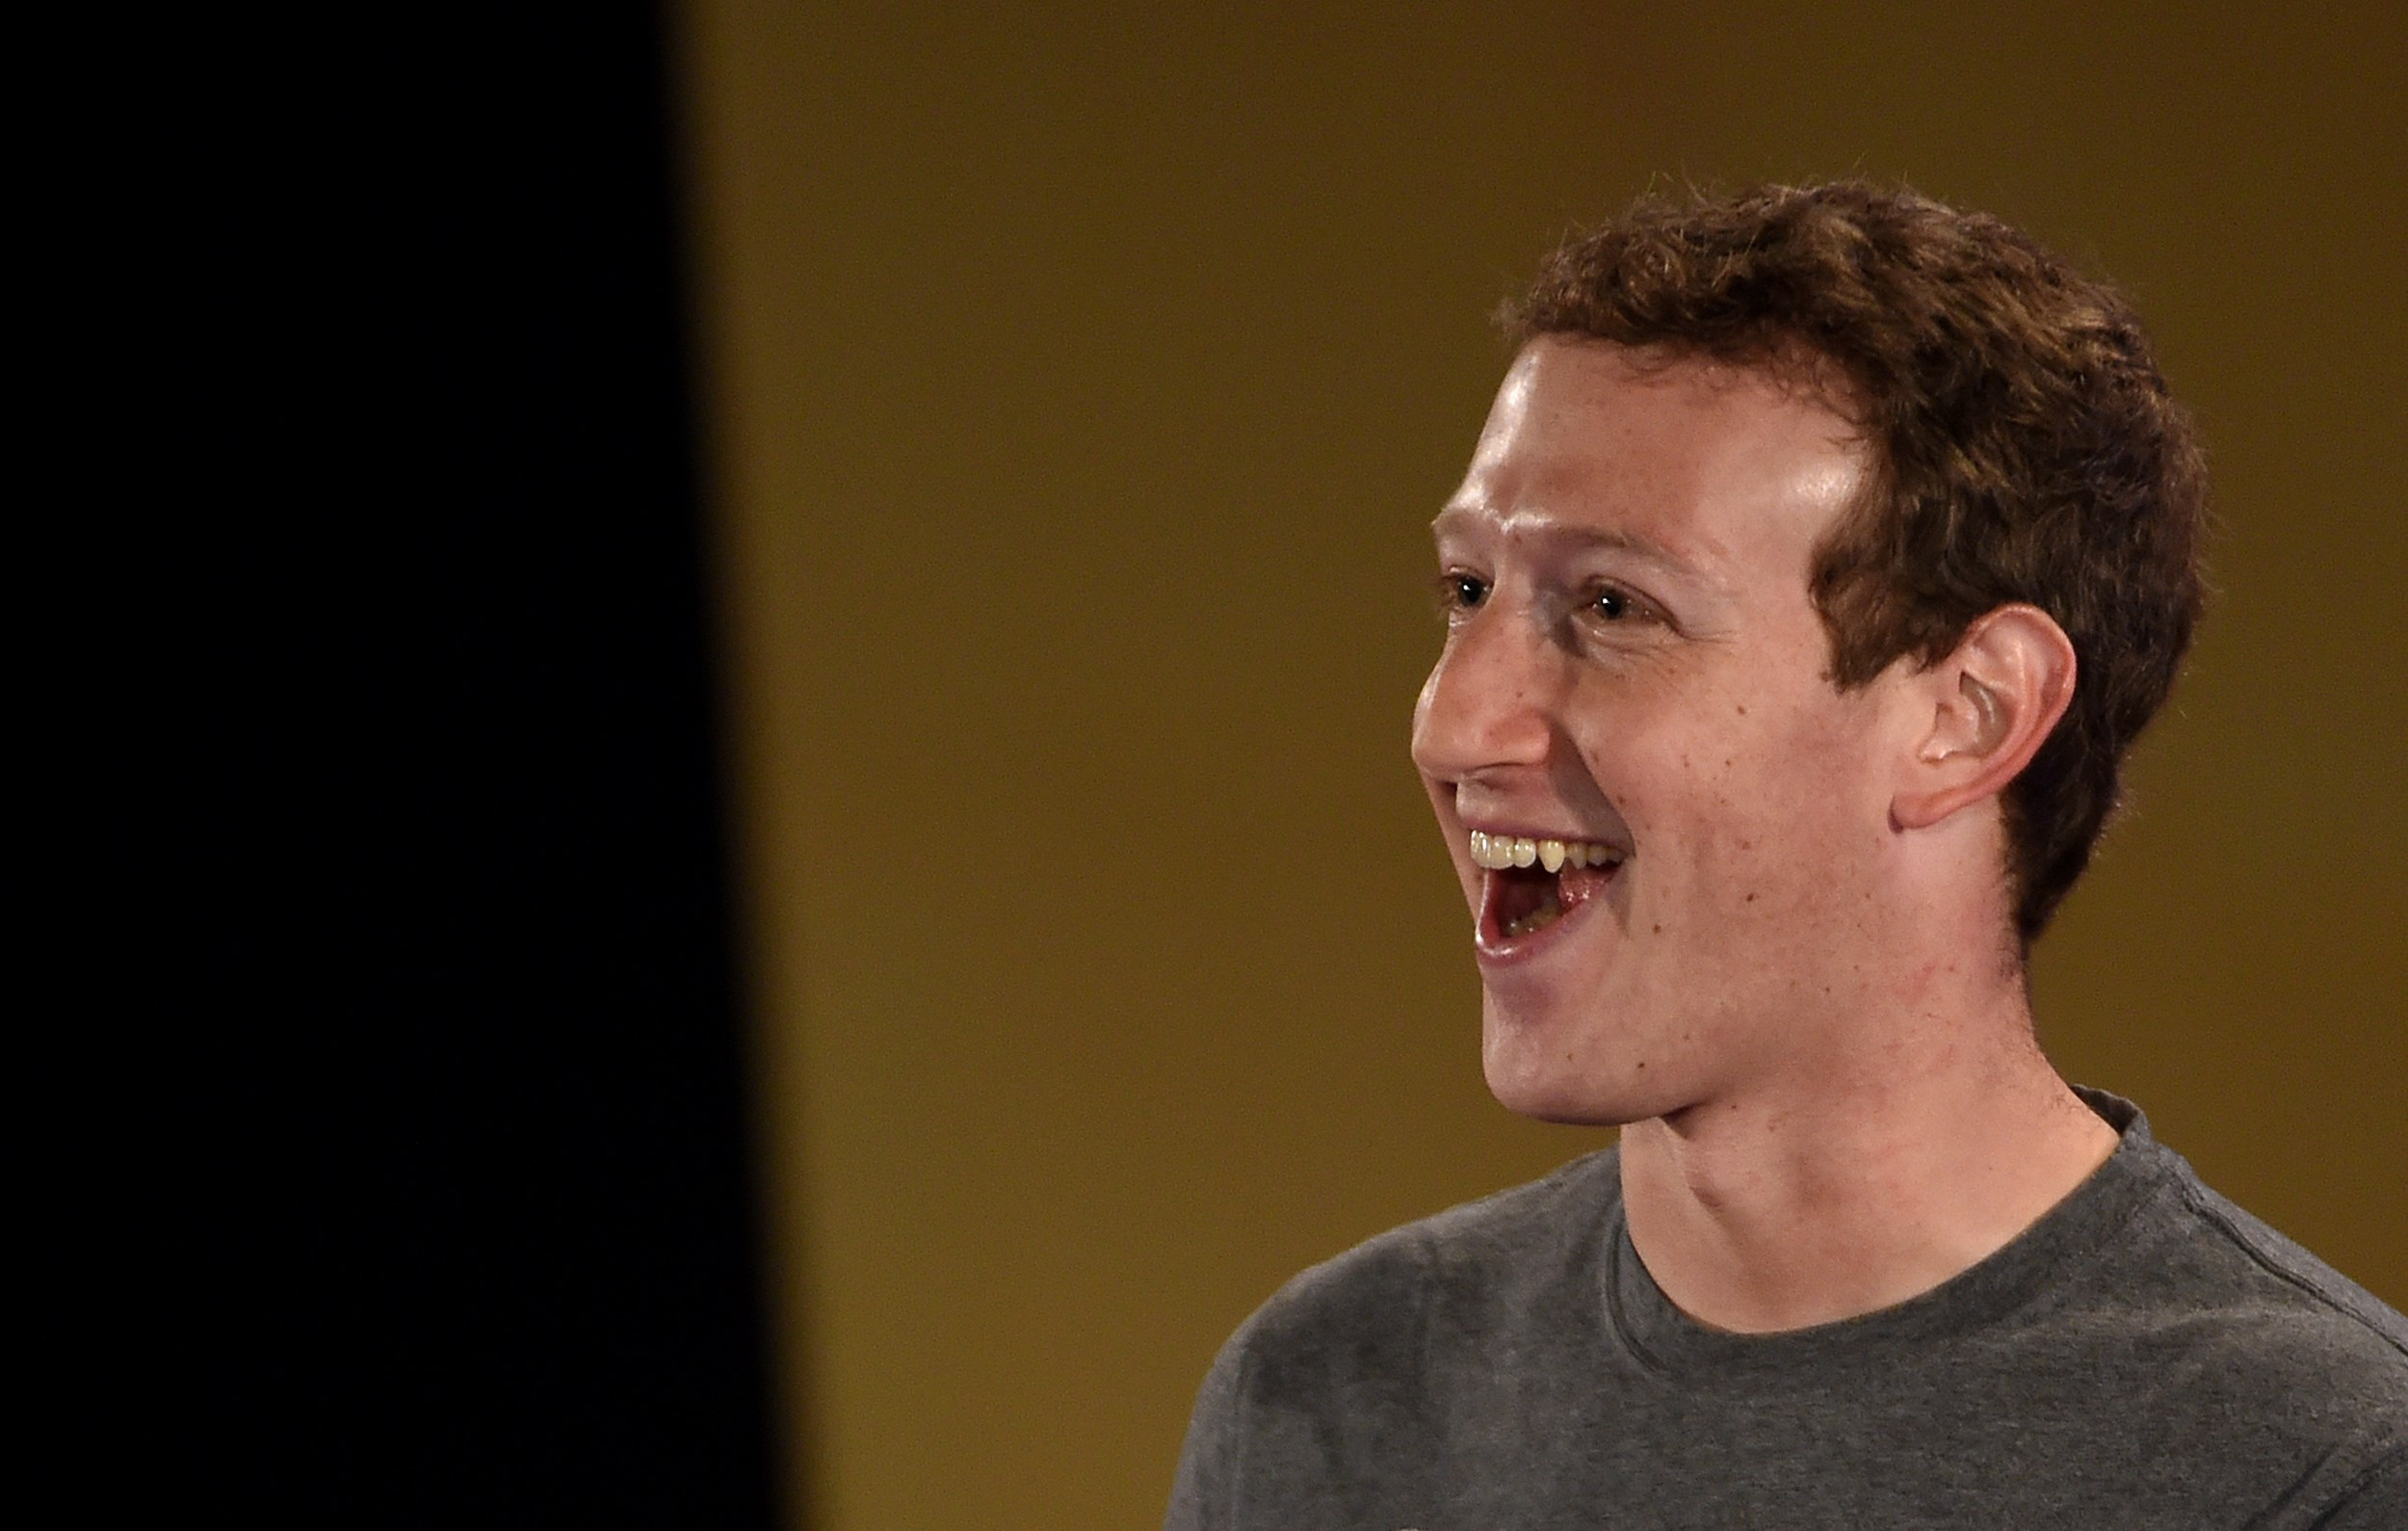 Facebook chief executive and founder Mark Zuckerberg speaks during a 'town-hall' meeting at the Indian Institute of Technology (IIT) in New Delhi on October 28, 2015.